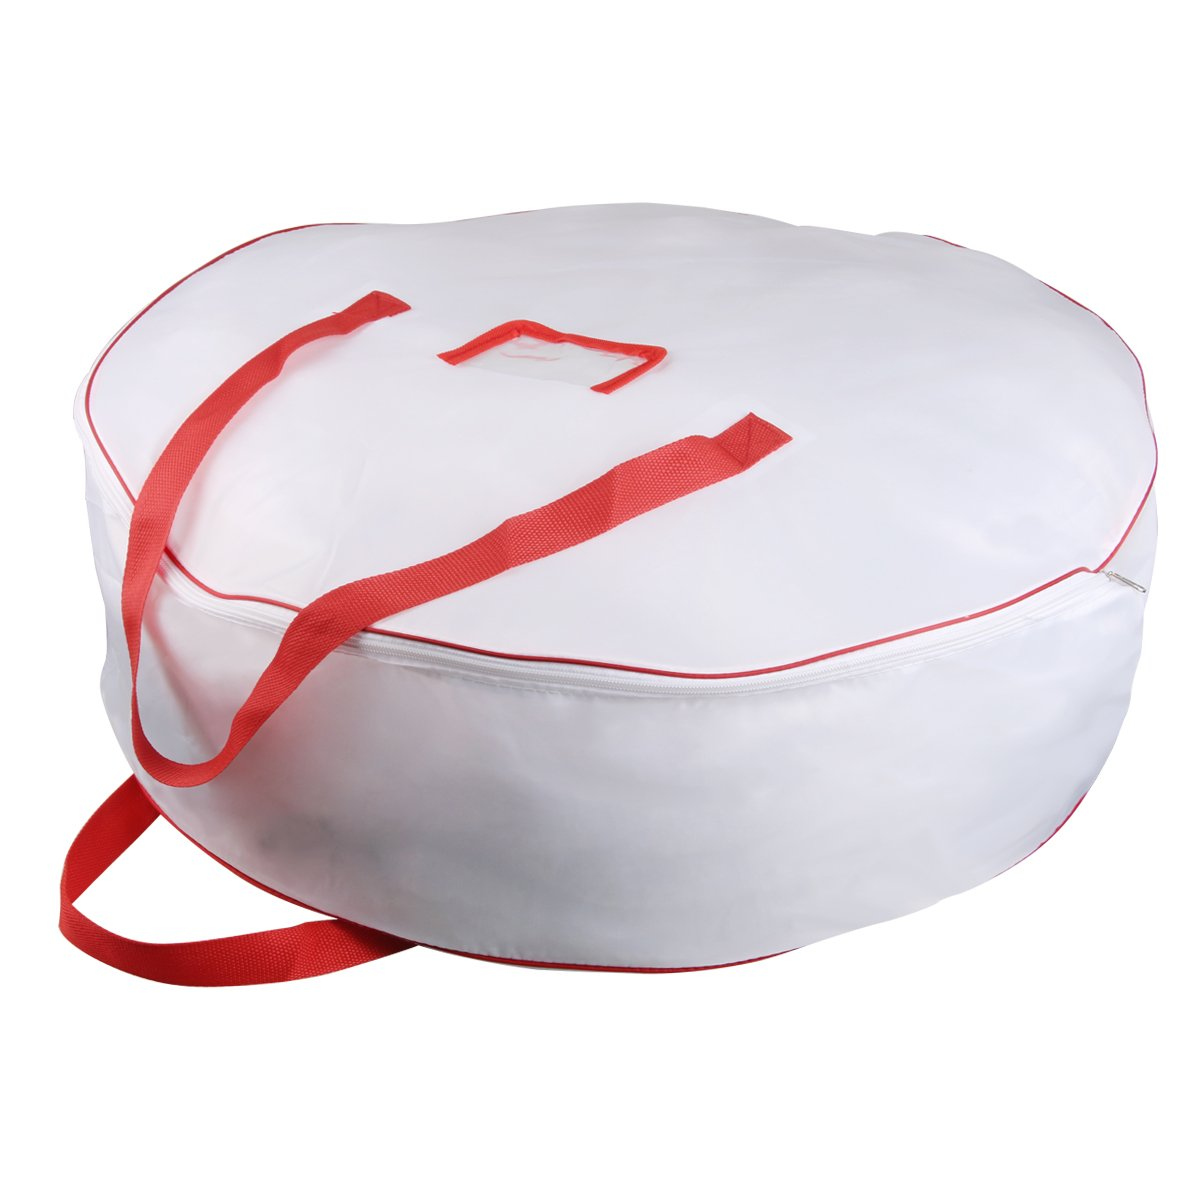 Christmas Wreath Storage Bag - Xmas Large Wreath Container - Reinforced Wide Handle and Double Sleek Zipper - Heavy Duty Protect Your Holiday Advent, Garland, Party Decorations and Ornaments 25'',White by TQS